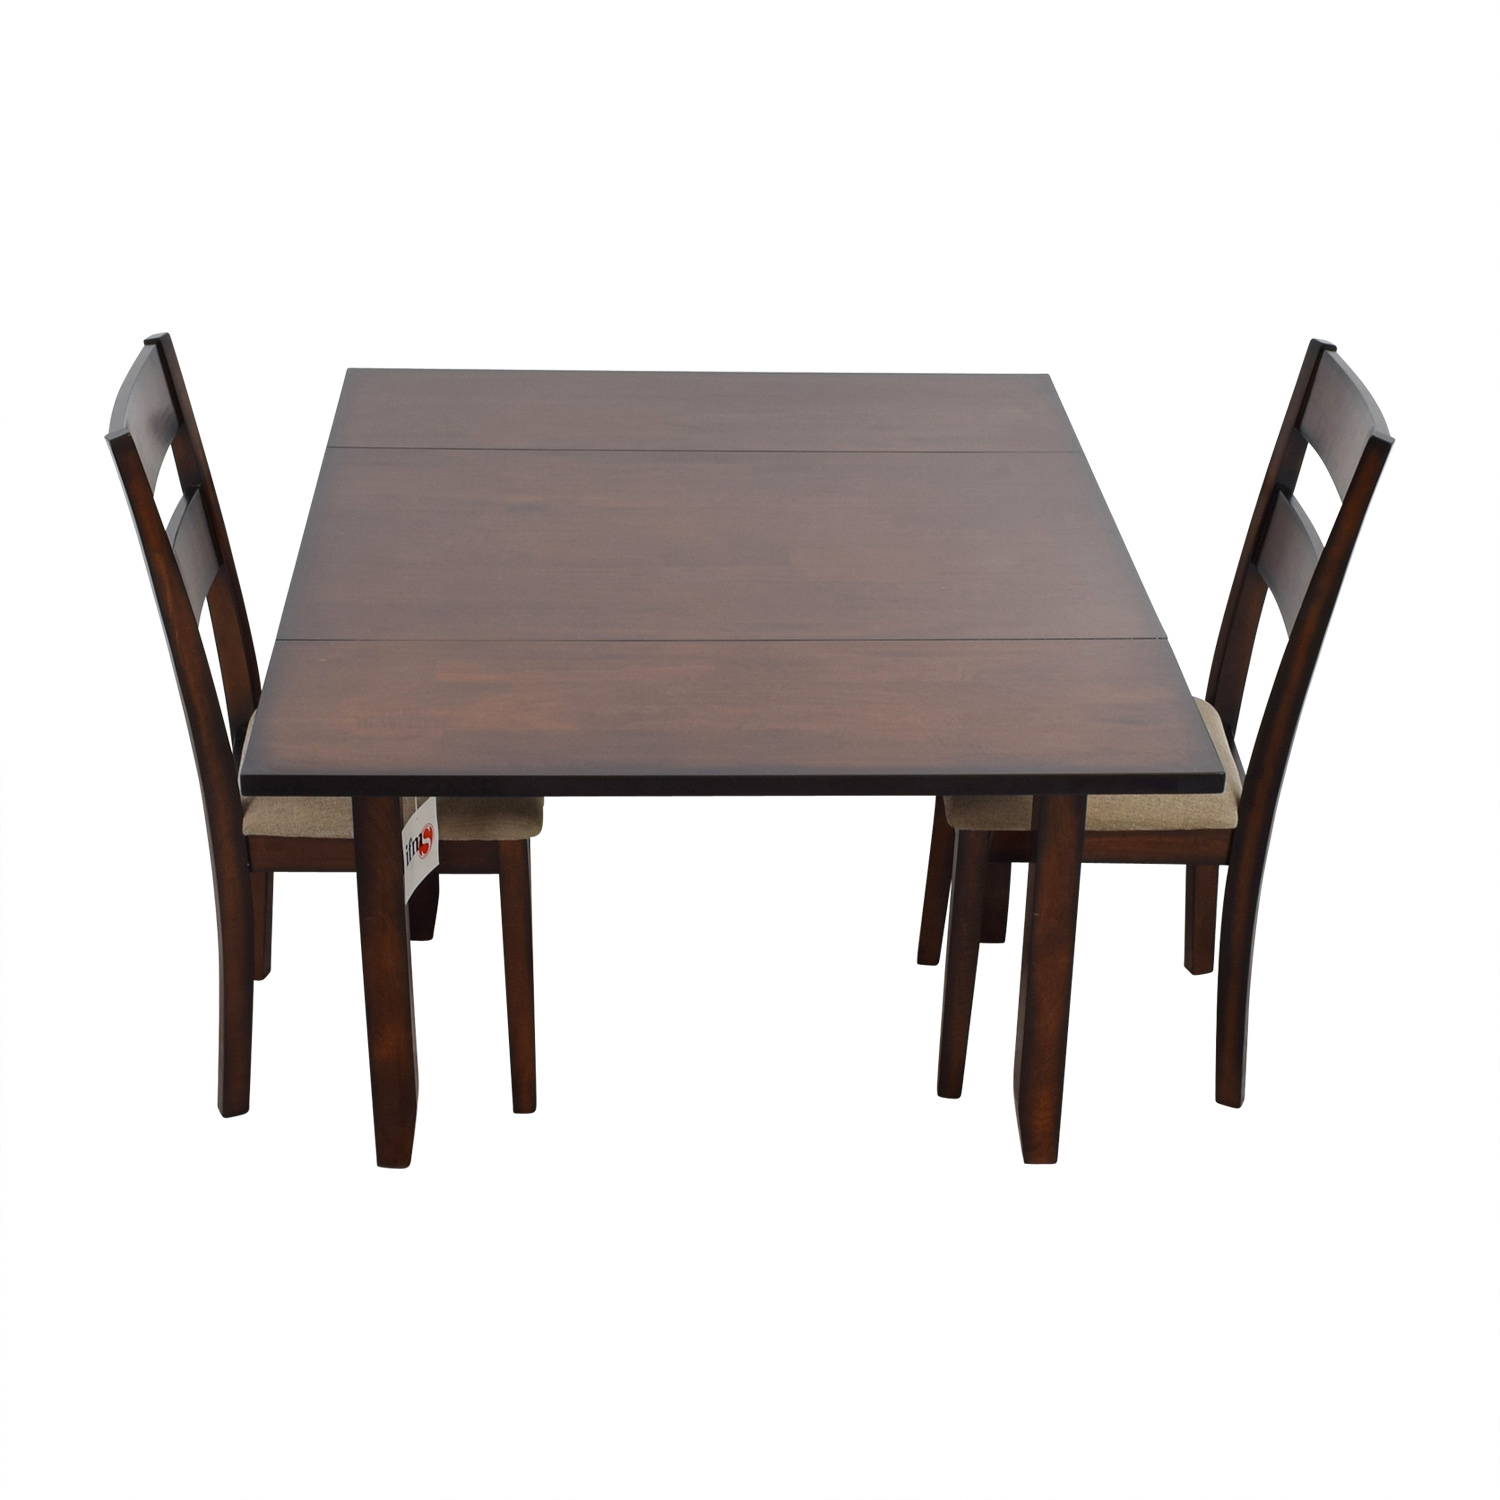 65% OFF - IFM IFM Drop Leaf Table with Two Chairs / Tables